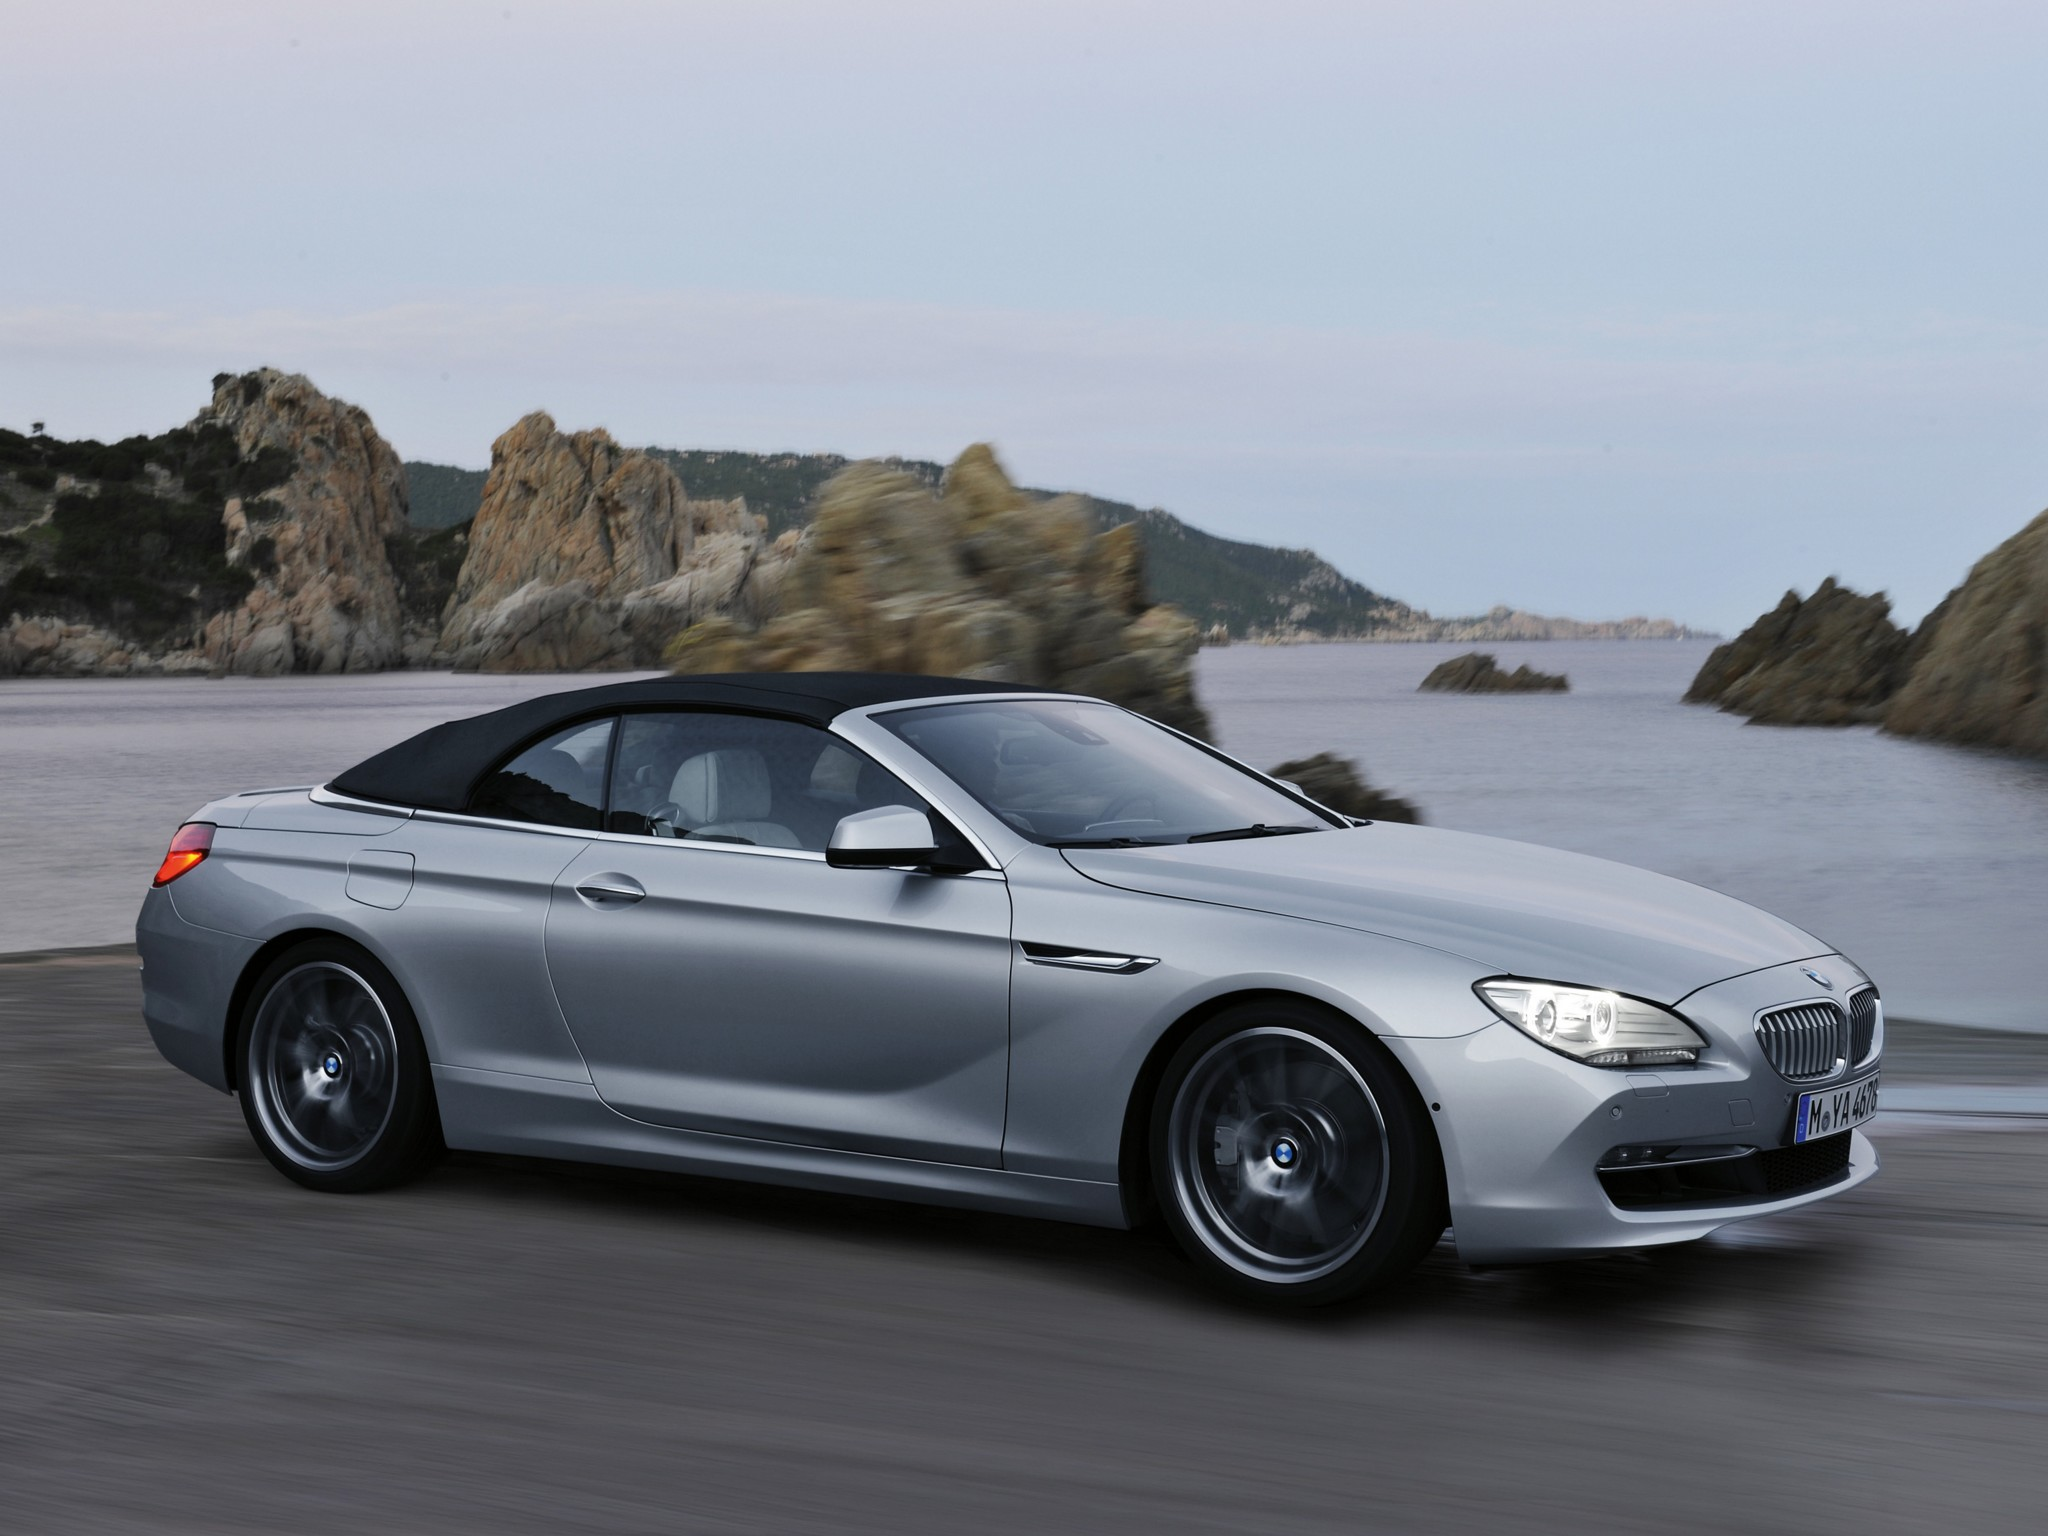 2010 Bmw 6 Series Image 17